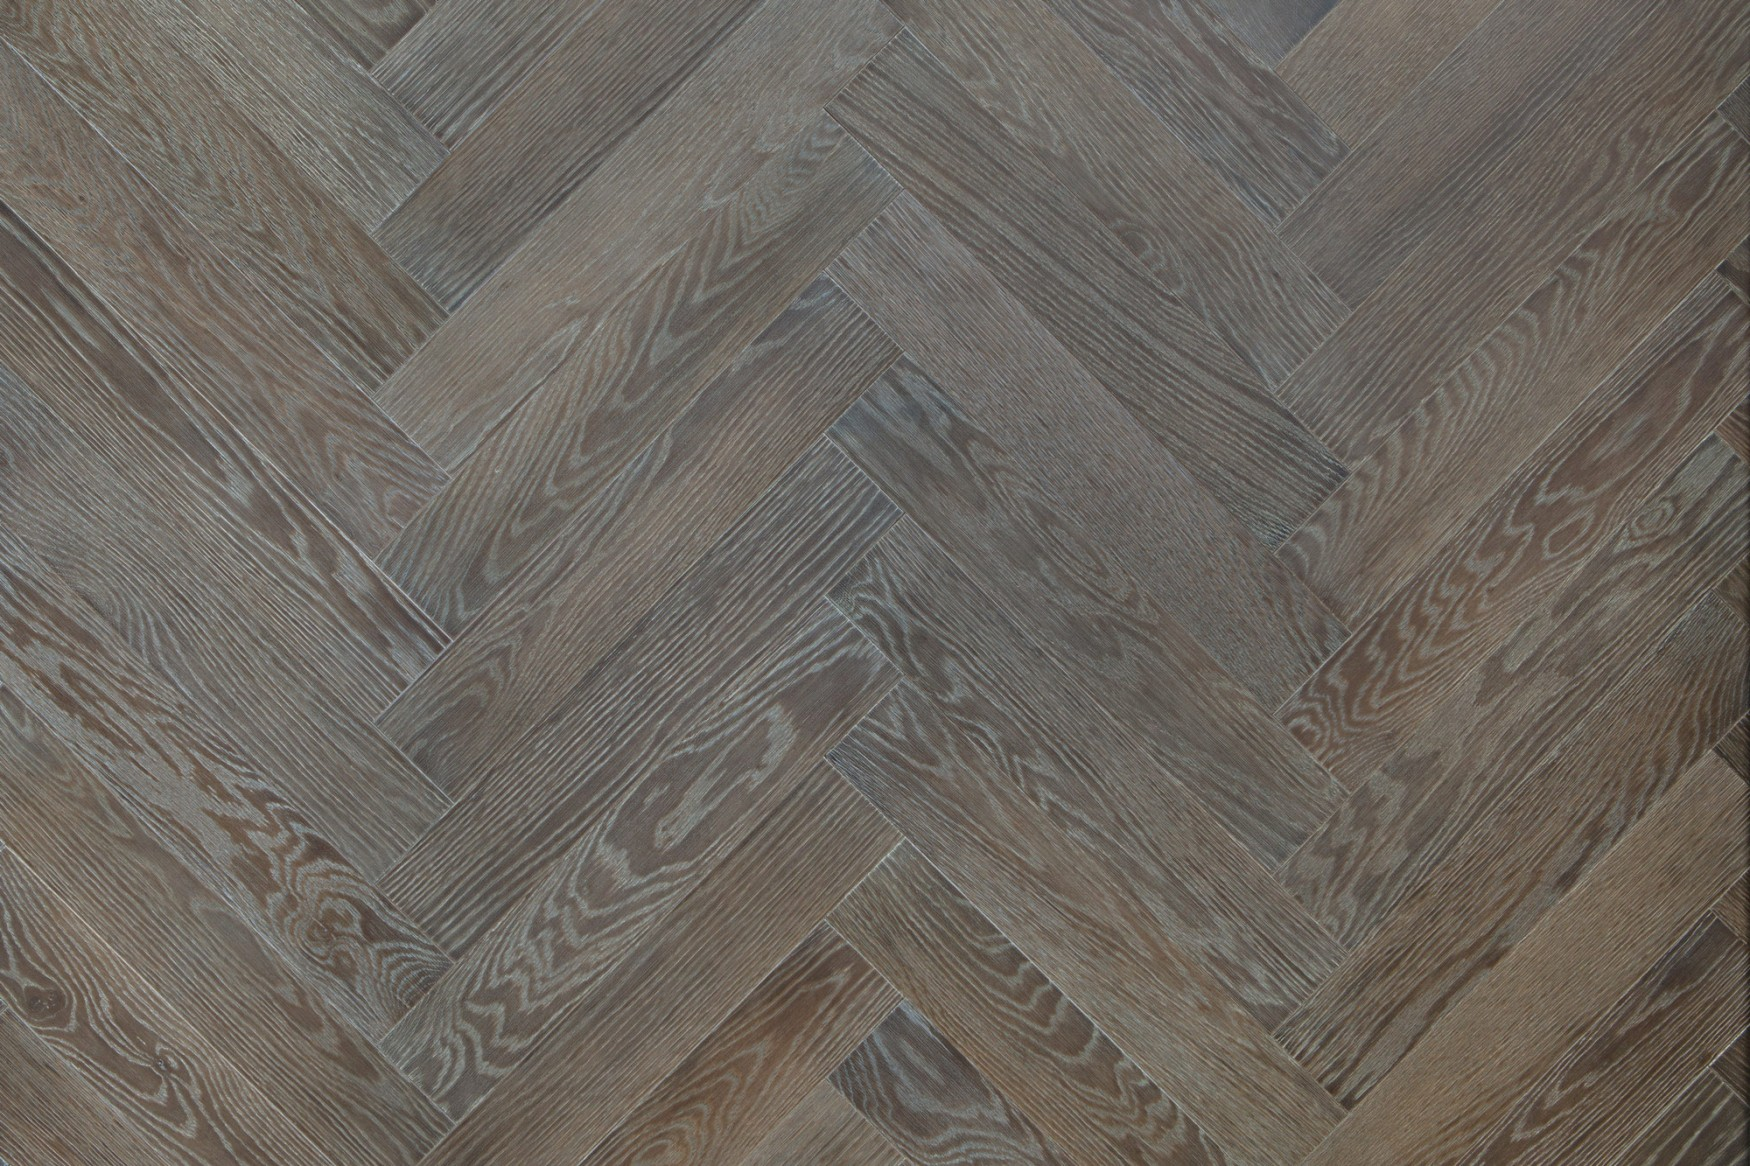 Element7_Hunter_silvered-oak-herringbone_2